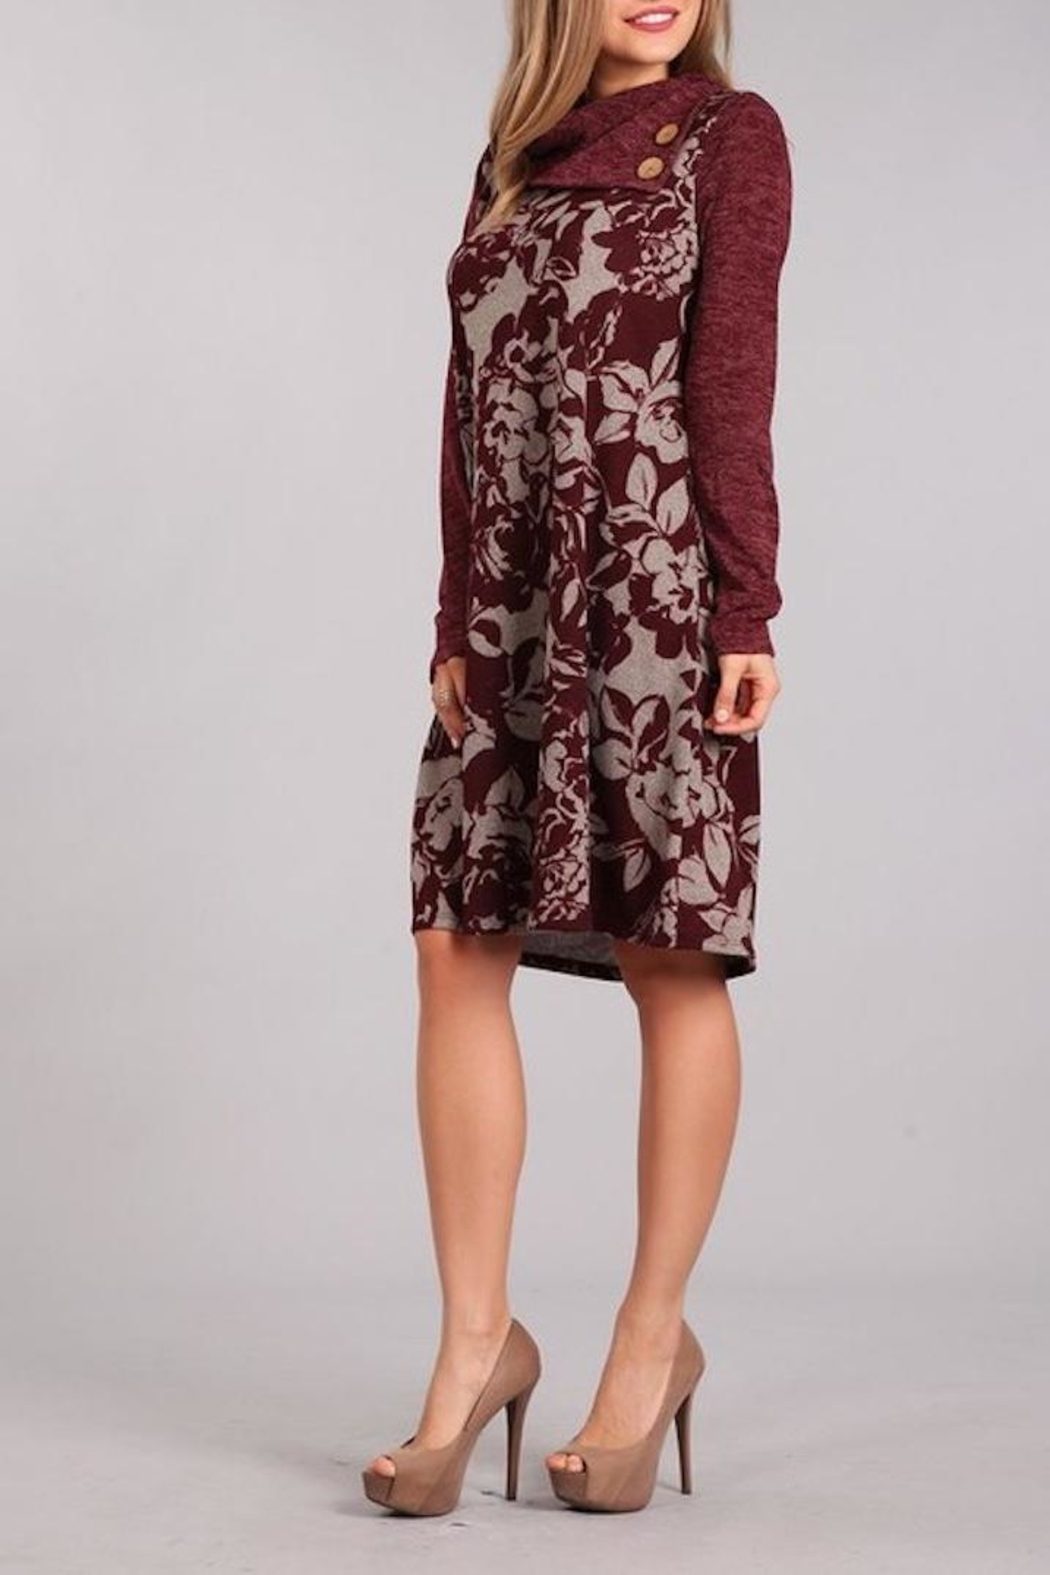 Chris & Carol Wine Floral Dress - Side Cropped Image